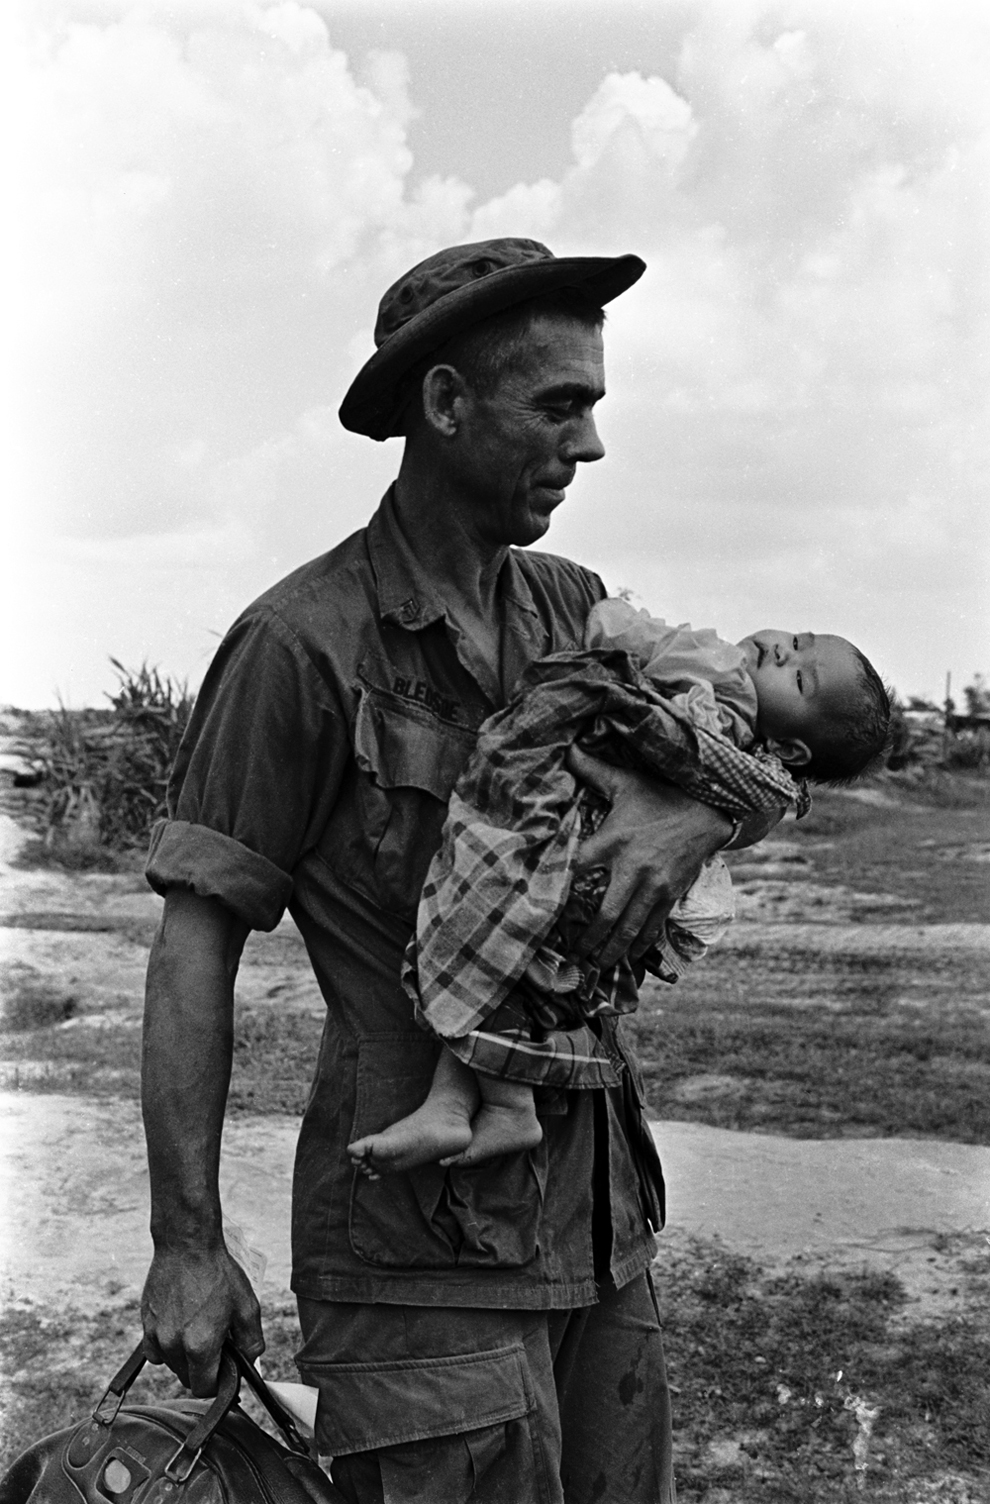 A soldier's eye: rediscovered pictures from Vietnam - Photos